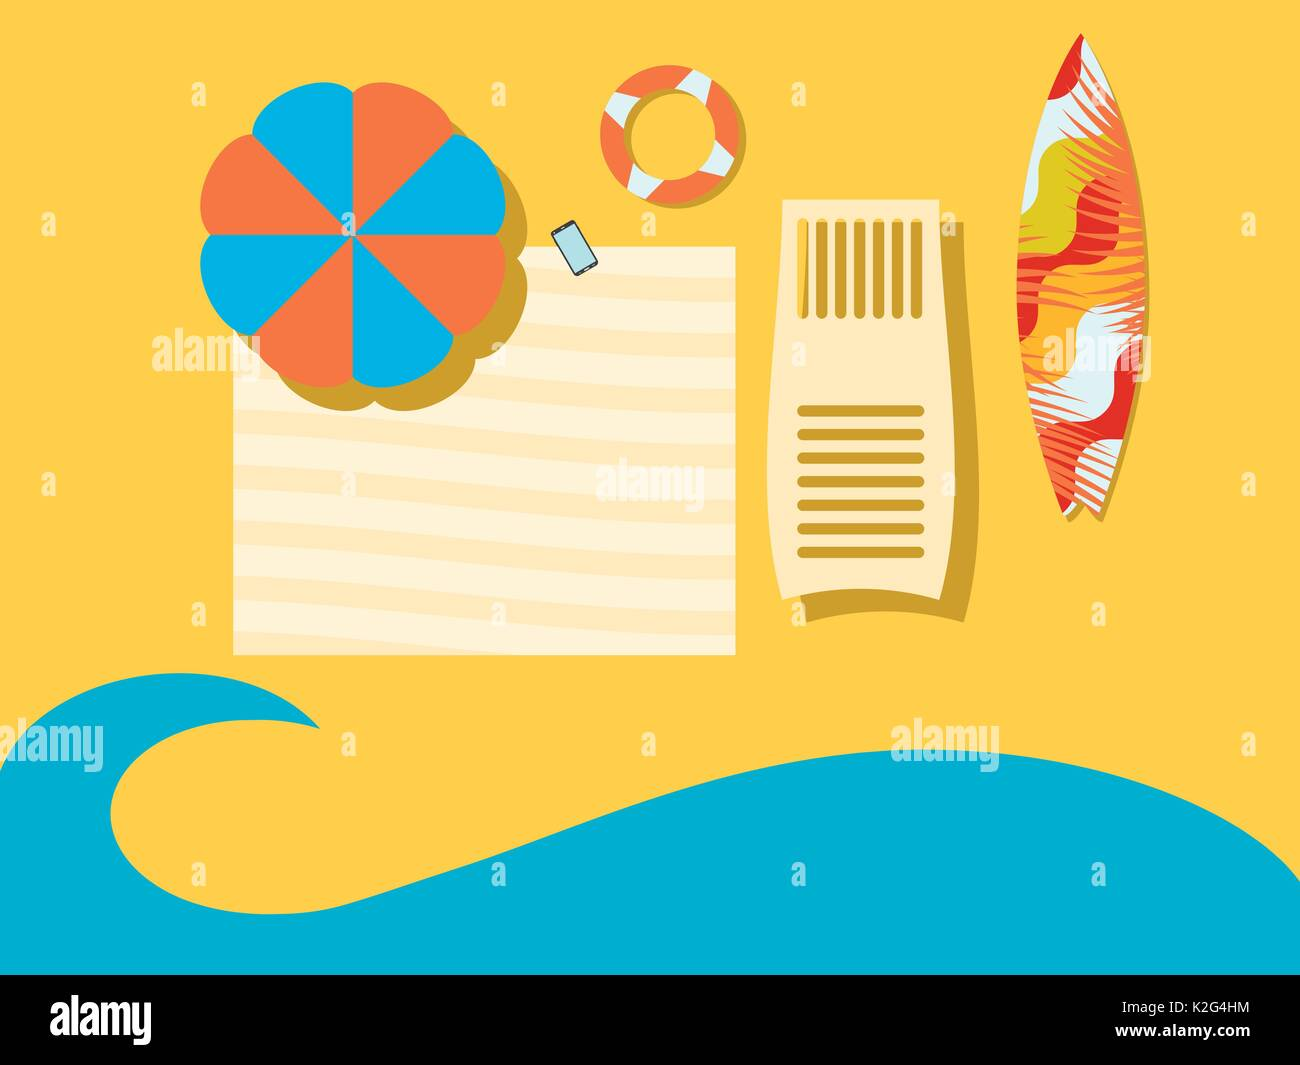 Beach, view from above. The sea coast with an umbrella, a coverlet, a chaise longue and a surfboard. Flat style. Place for the text. Vector illustrati - Stock Vector